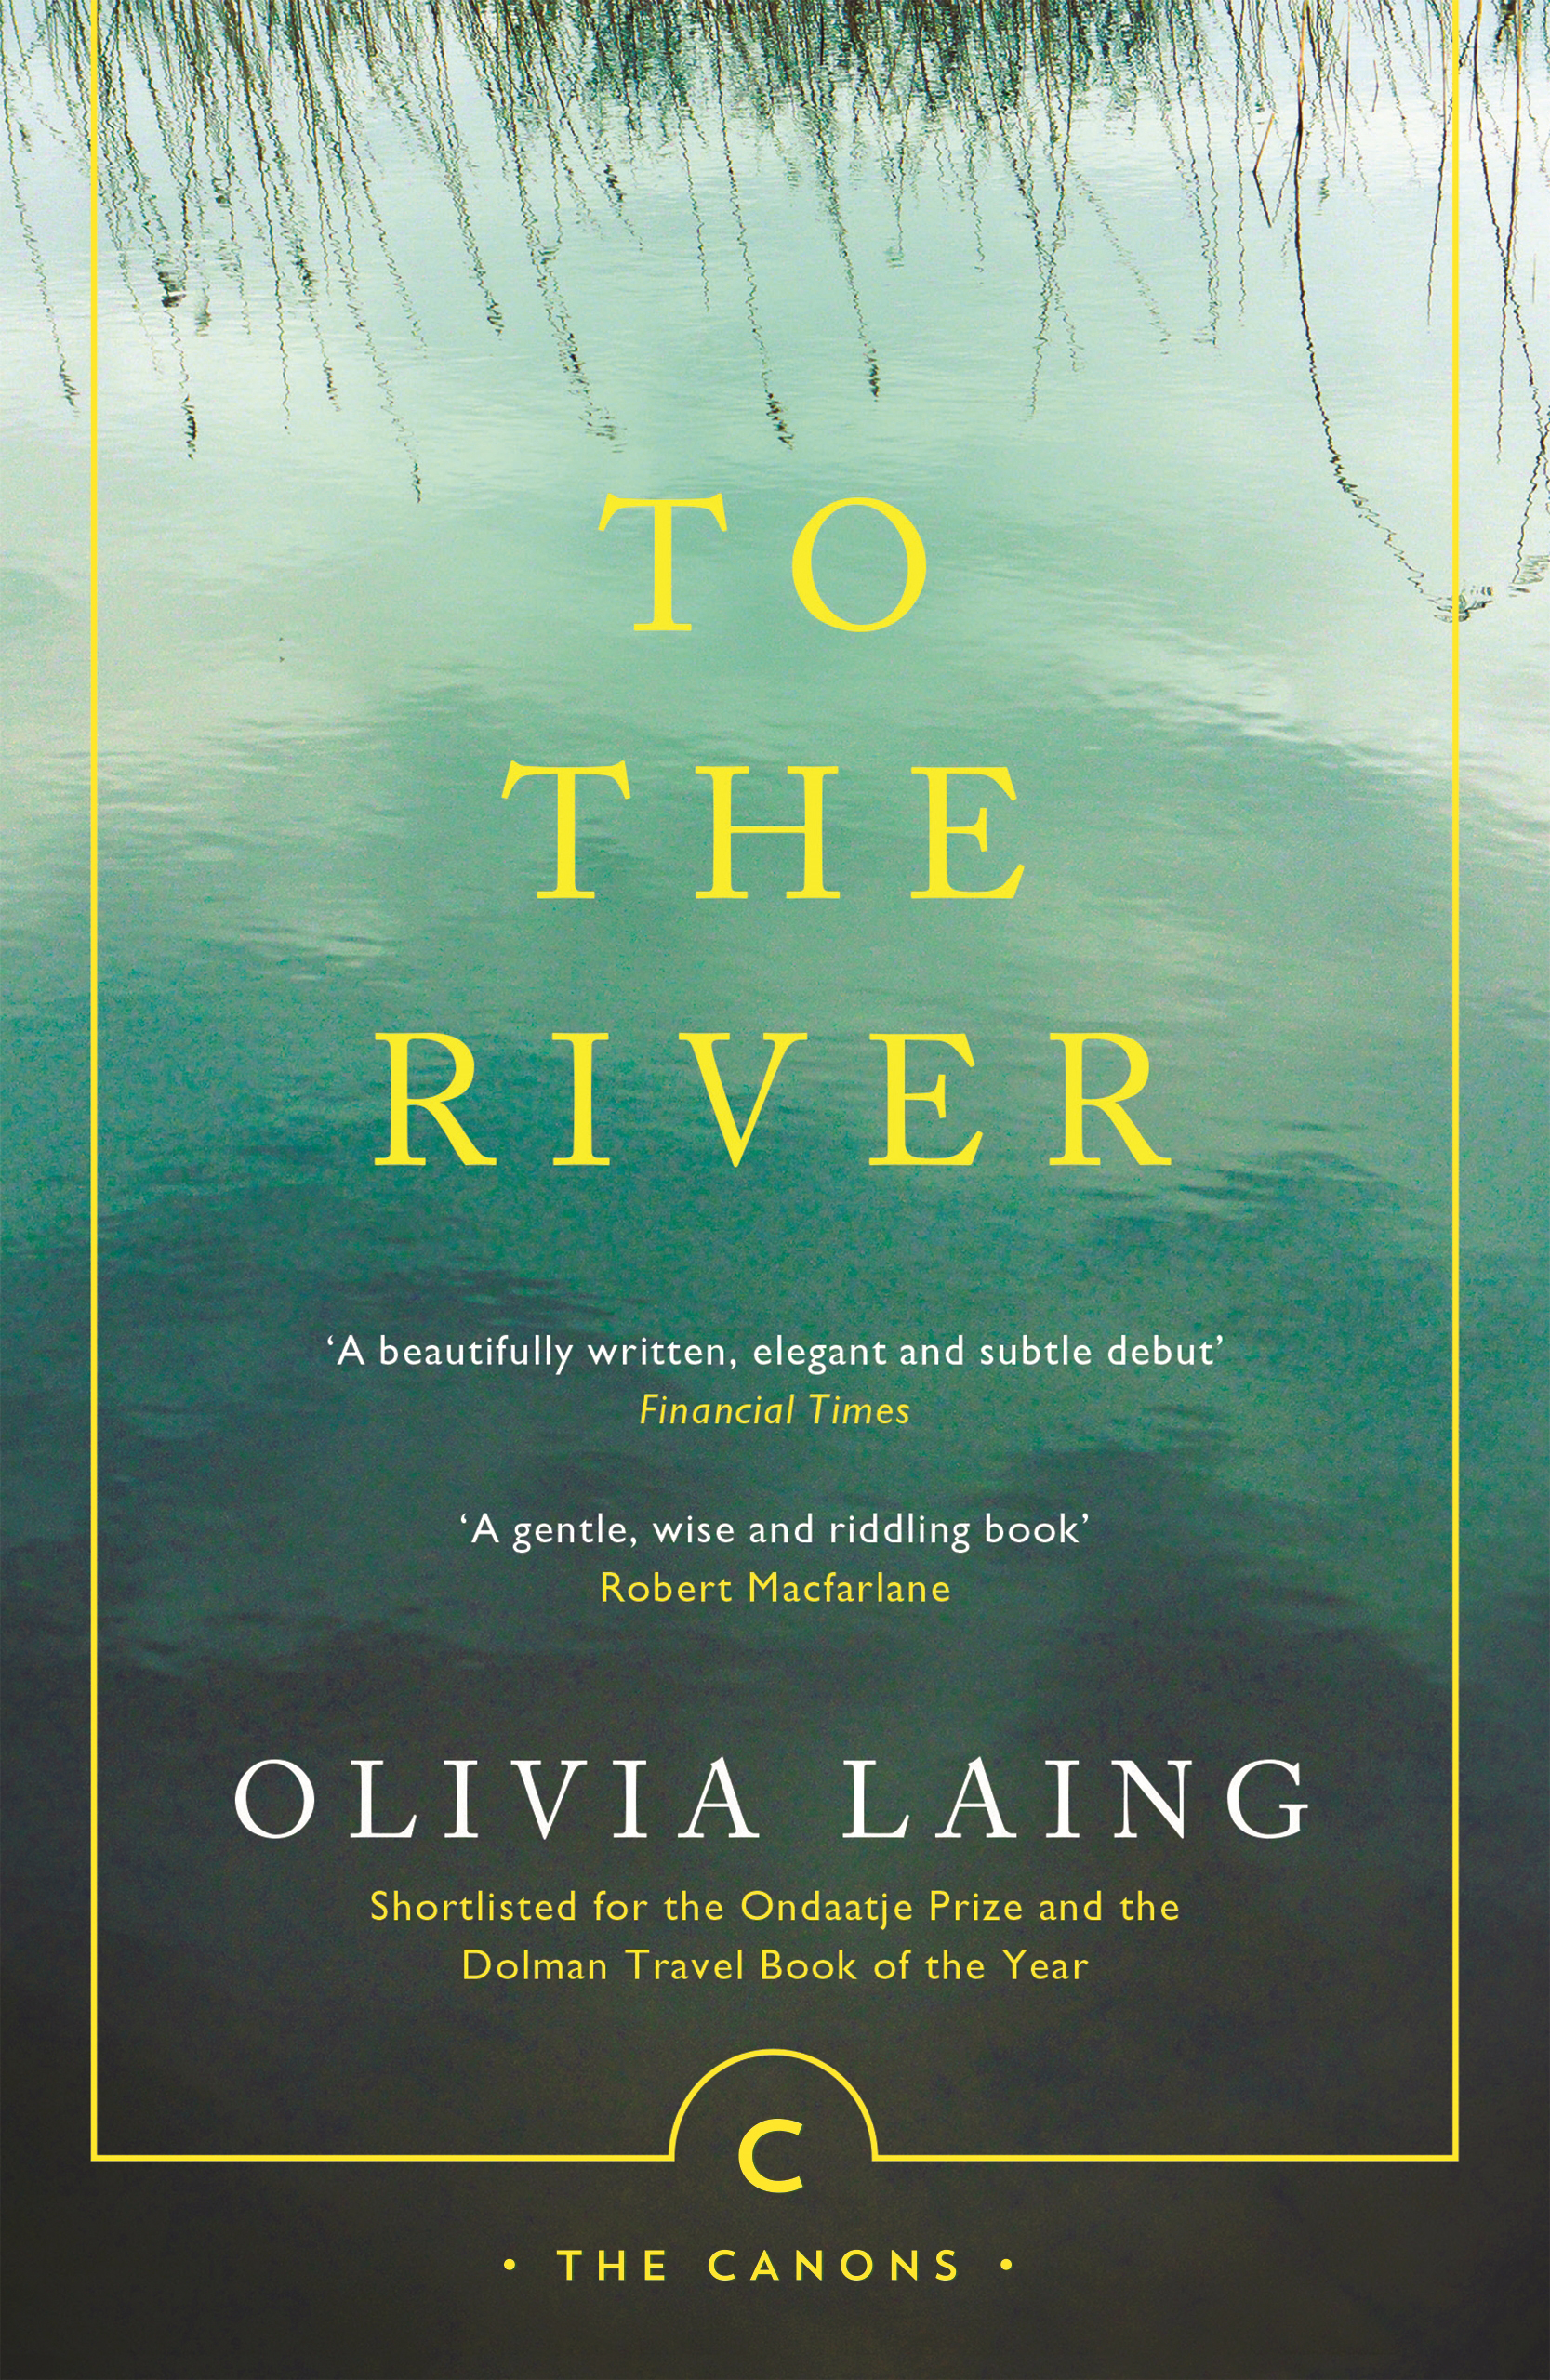 To the River by Olivia Laing, ISBN: 9781786891587